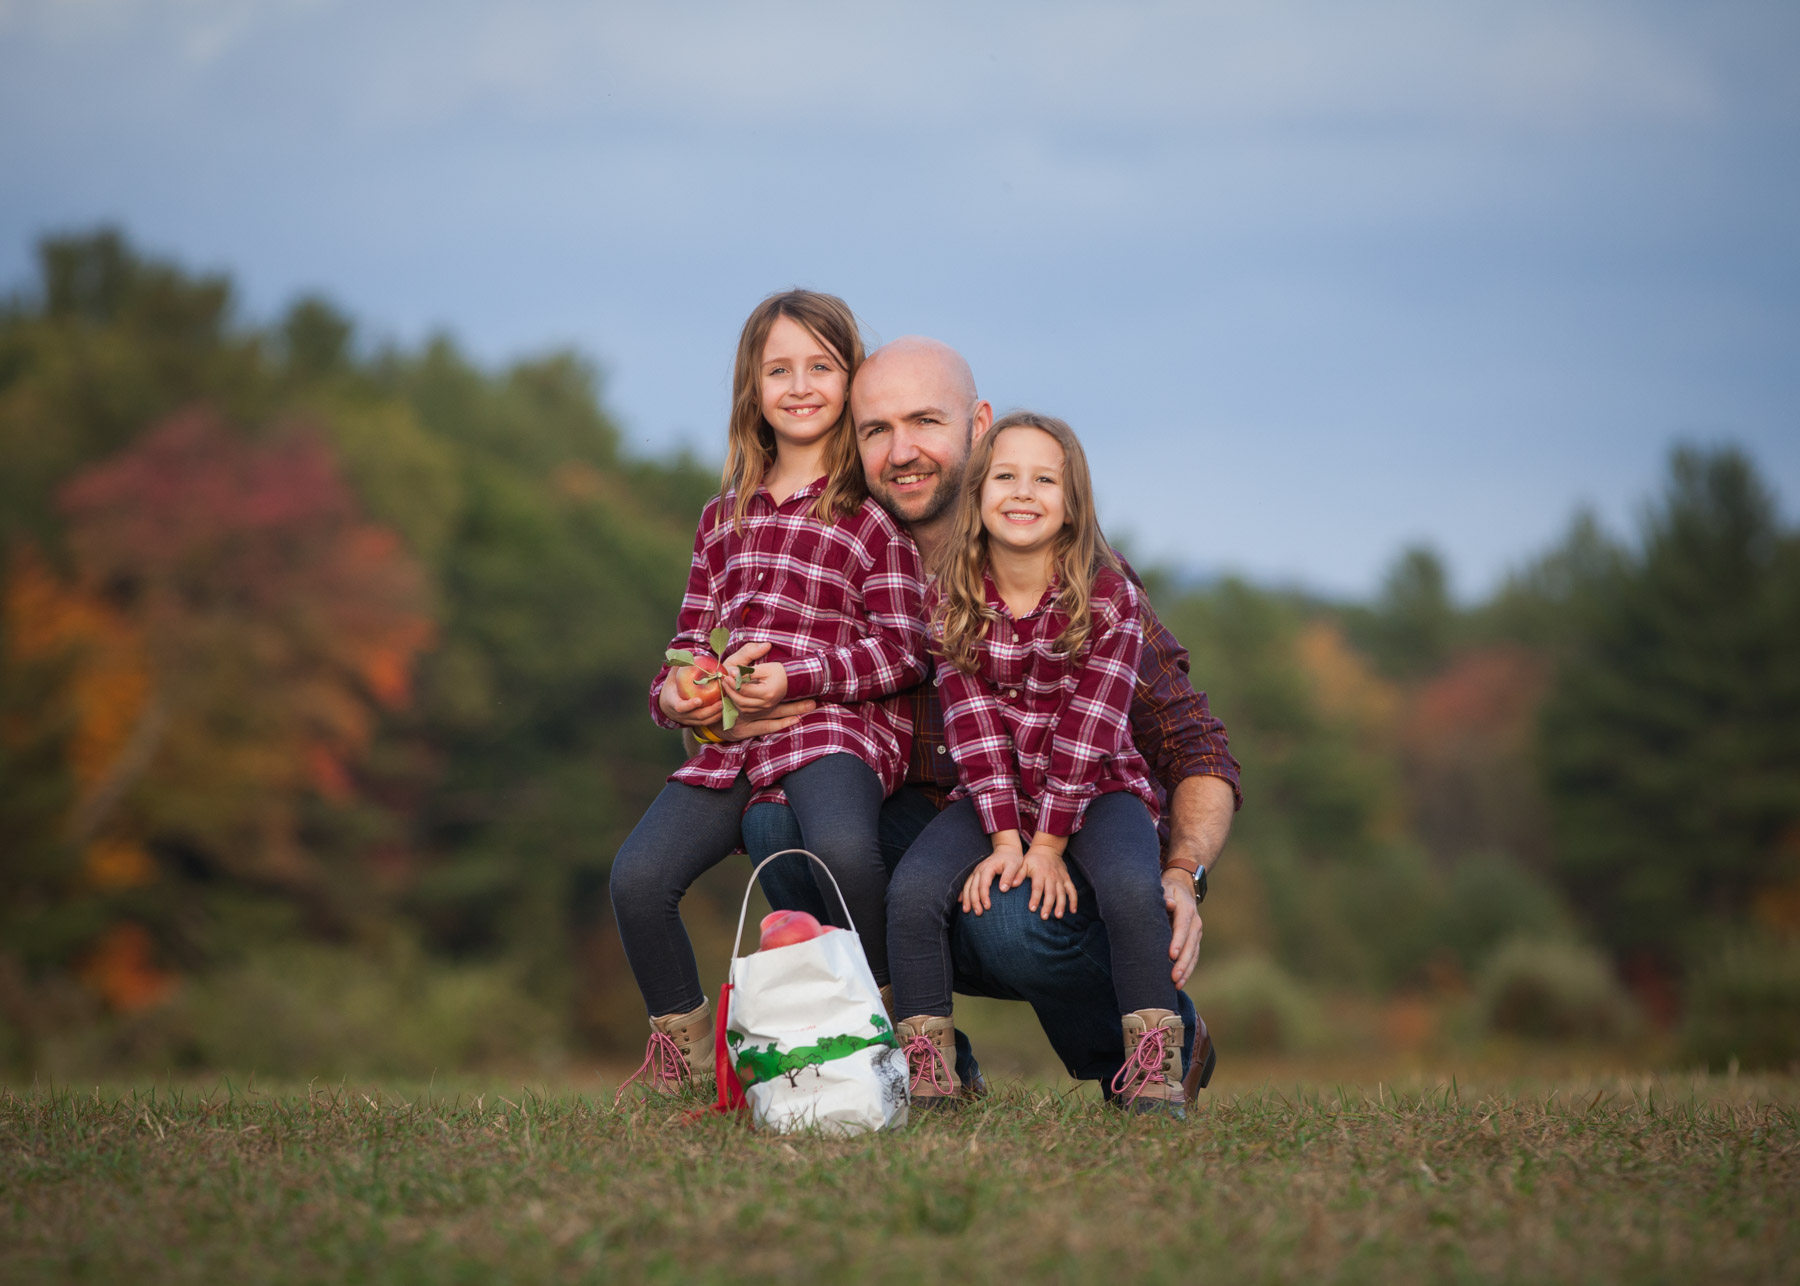 Dad and his daughters, wearing matching flannel shirts, sit together on a hill with a peck of apples in front and fall foliage behind them.